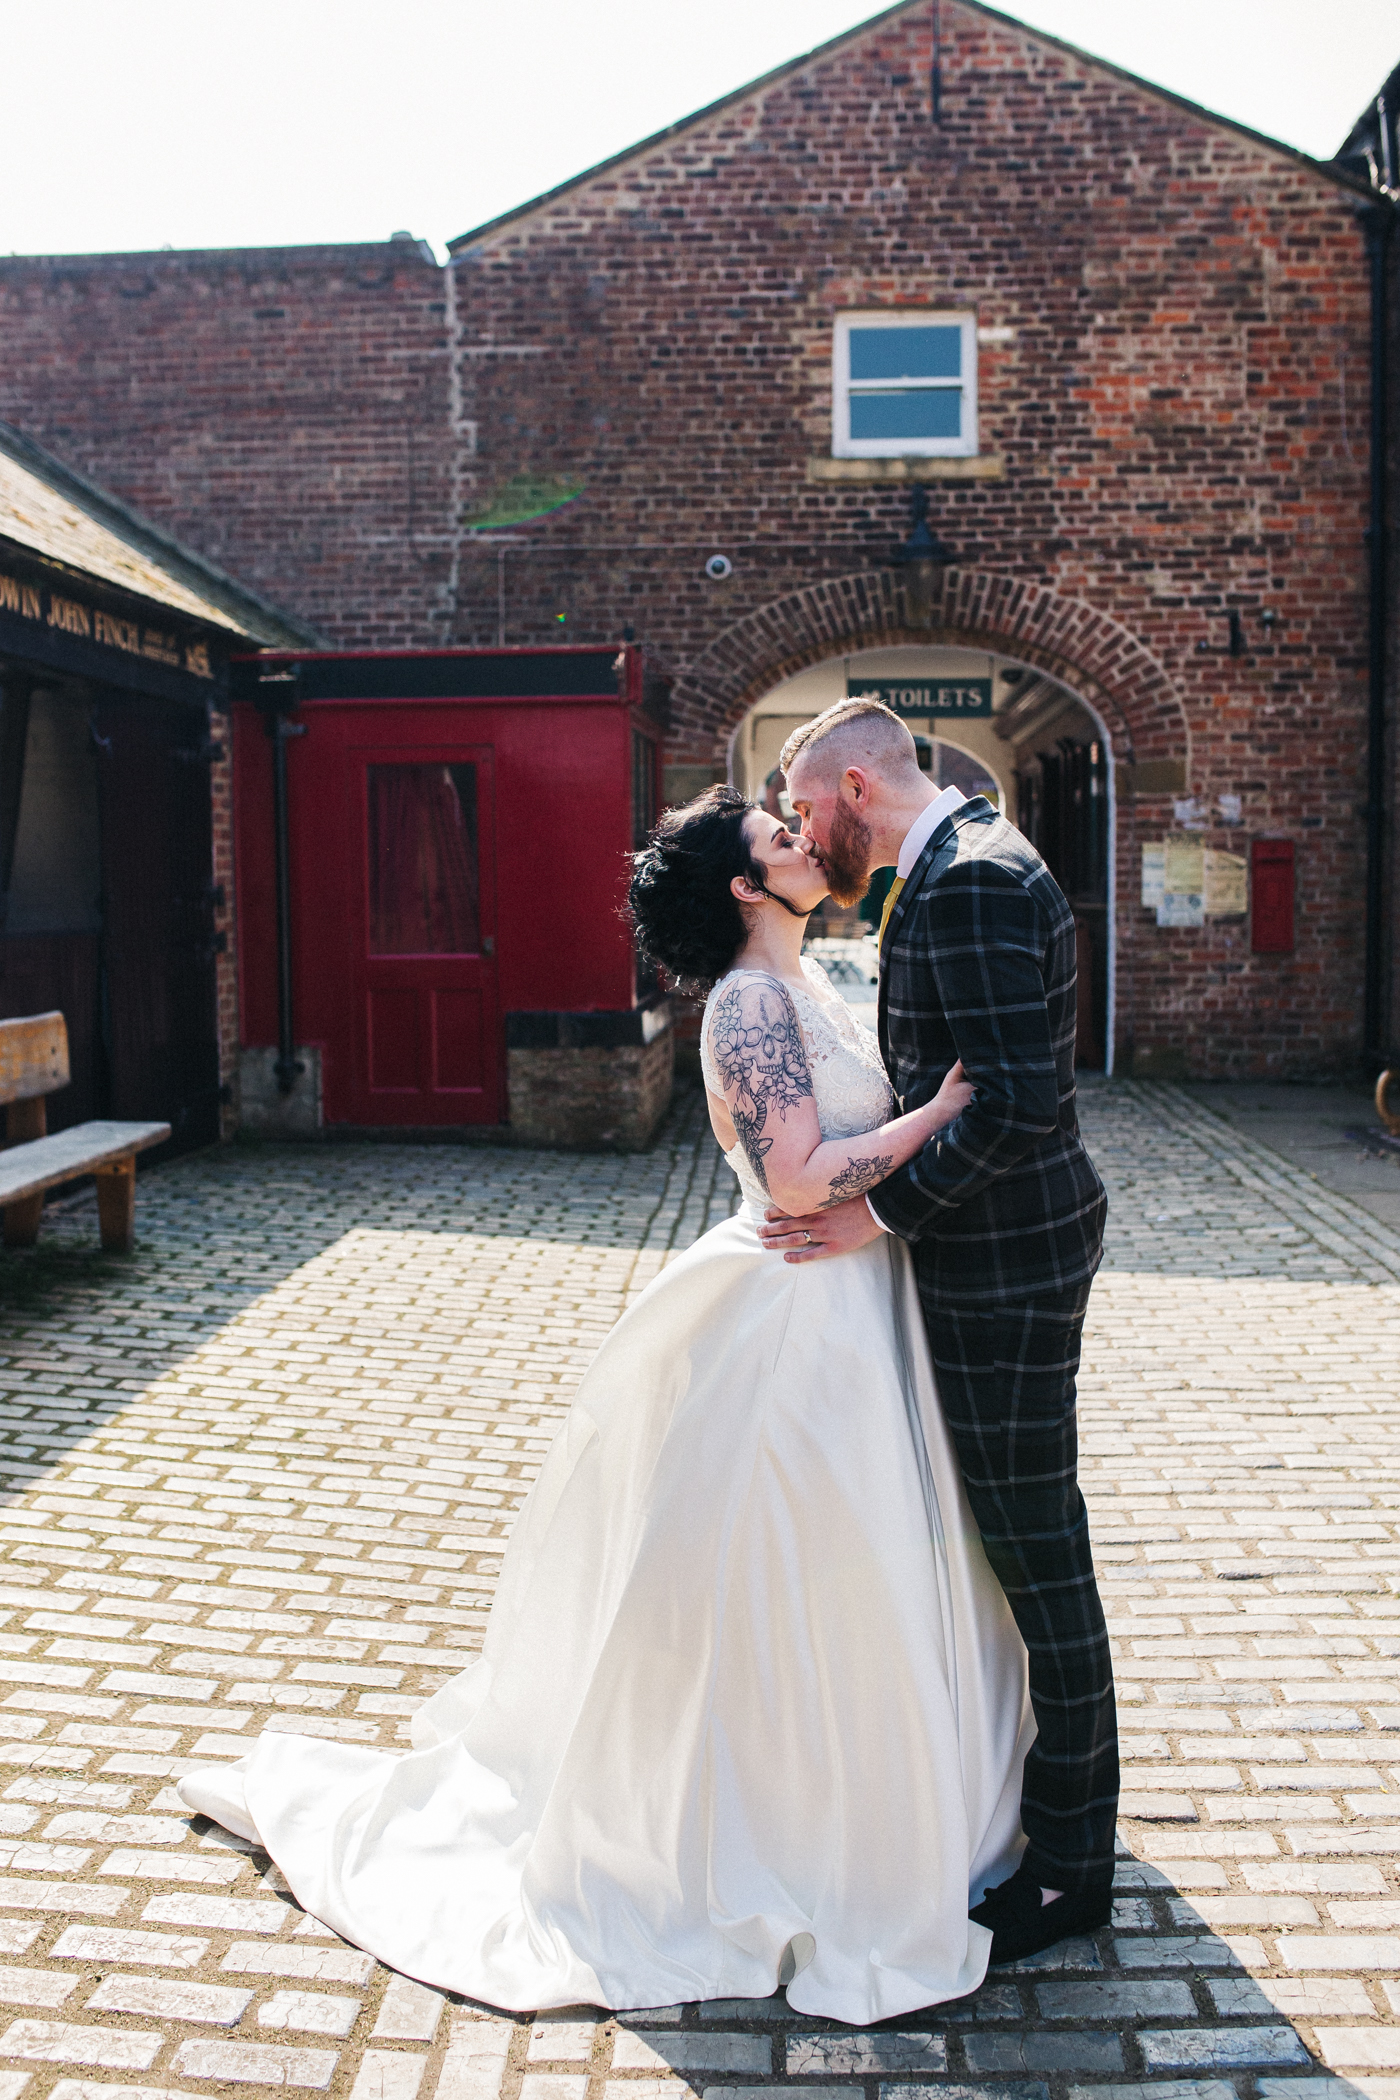 a bride and groom kiss in a victorian street. preston park museum wedding stockton teesside middlesbrough wedding photographer